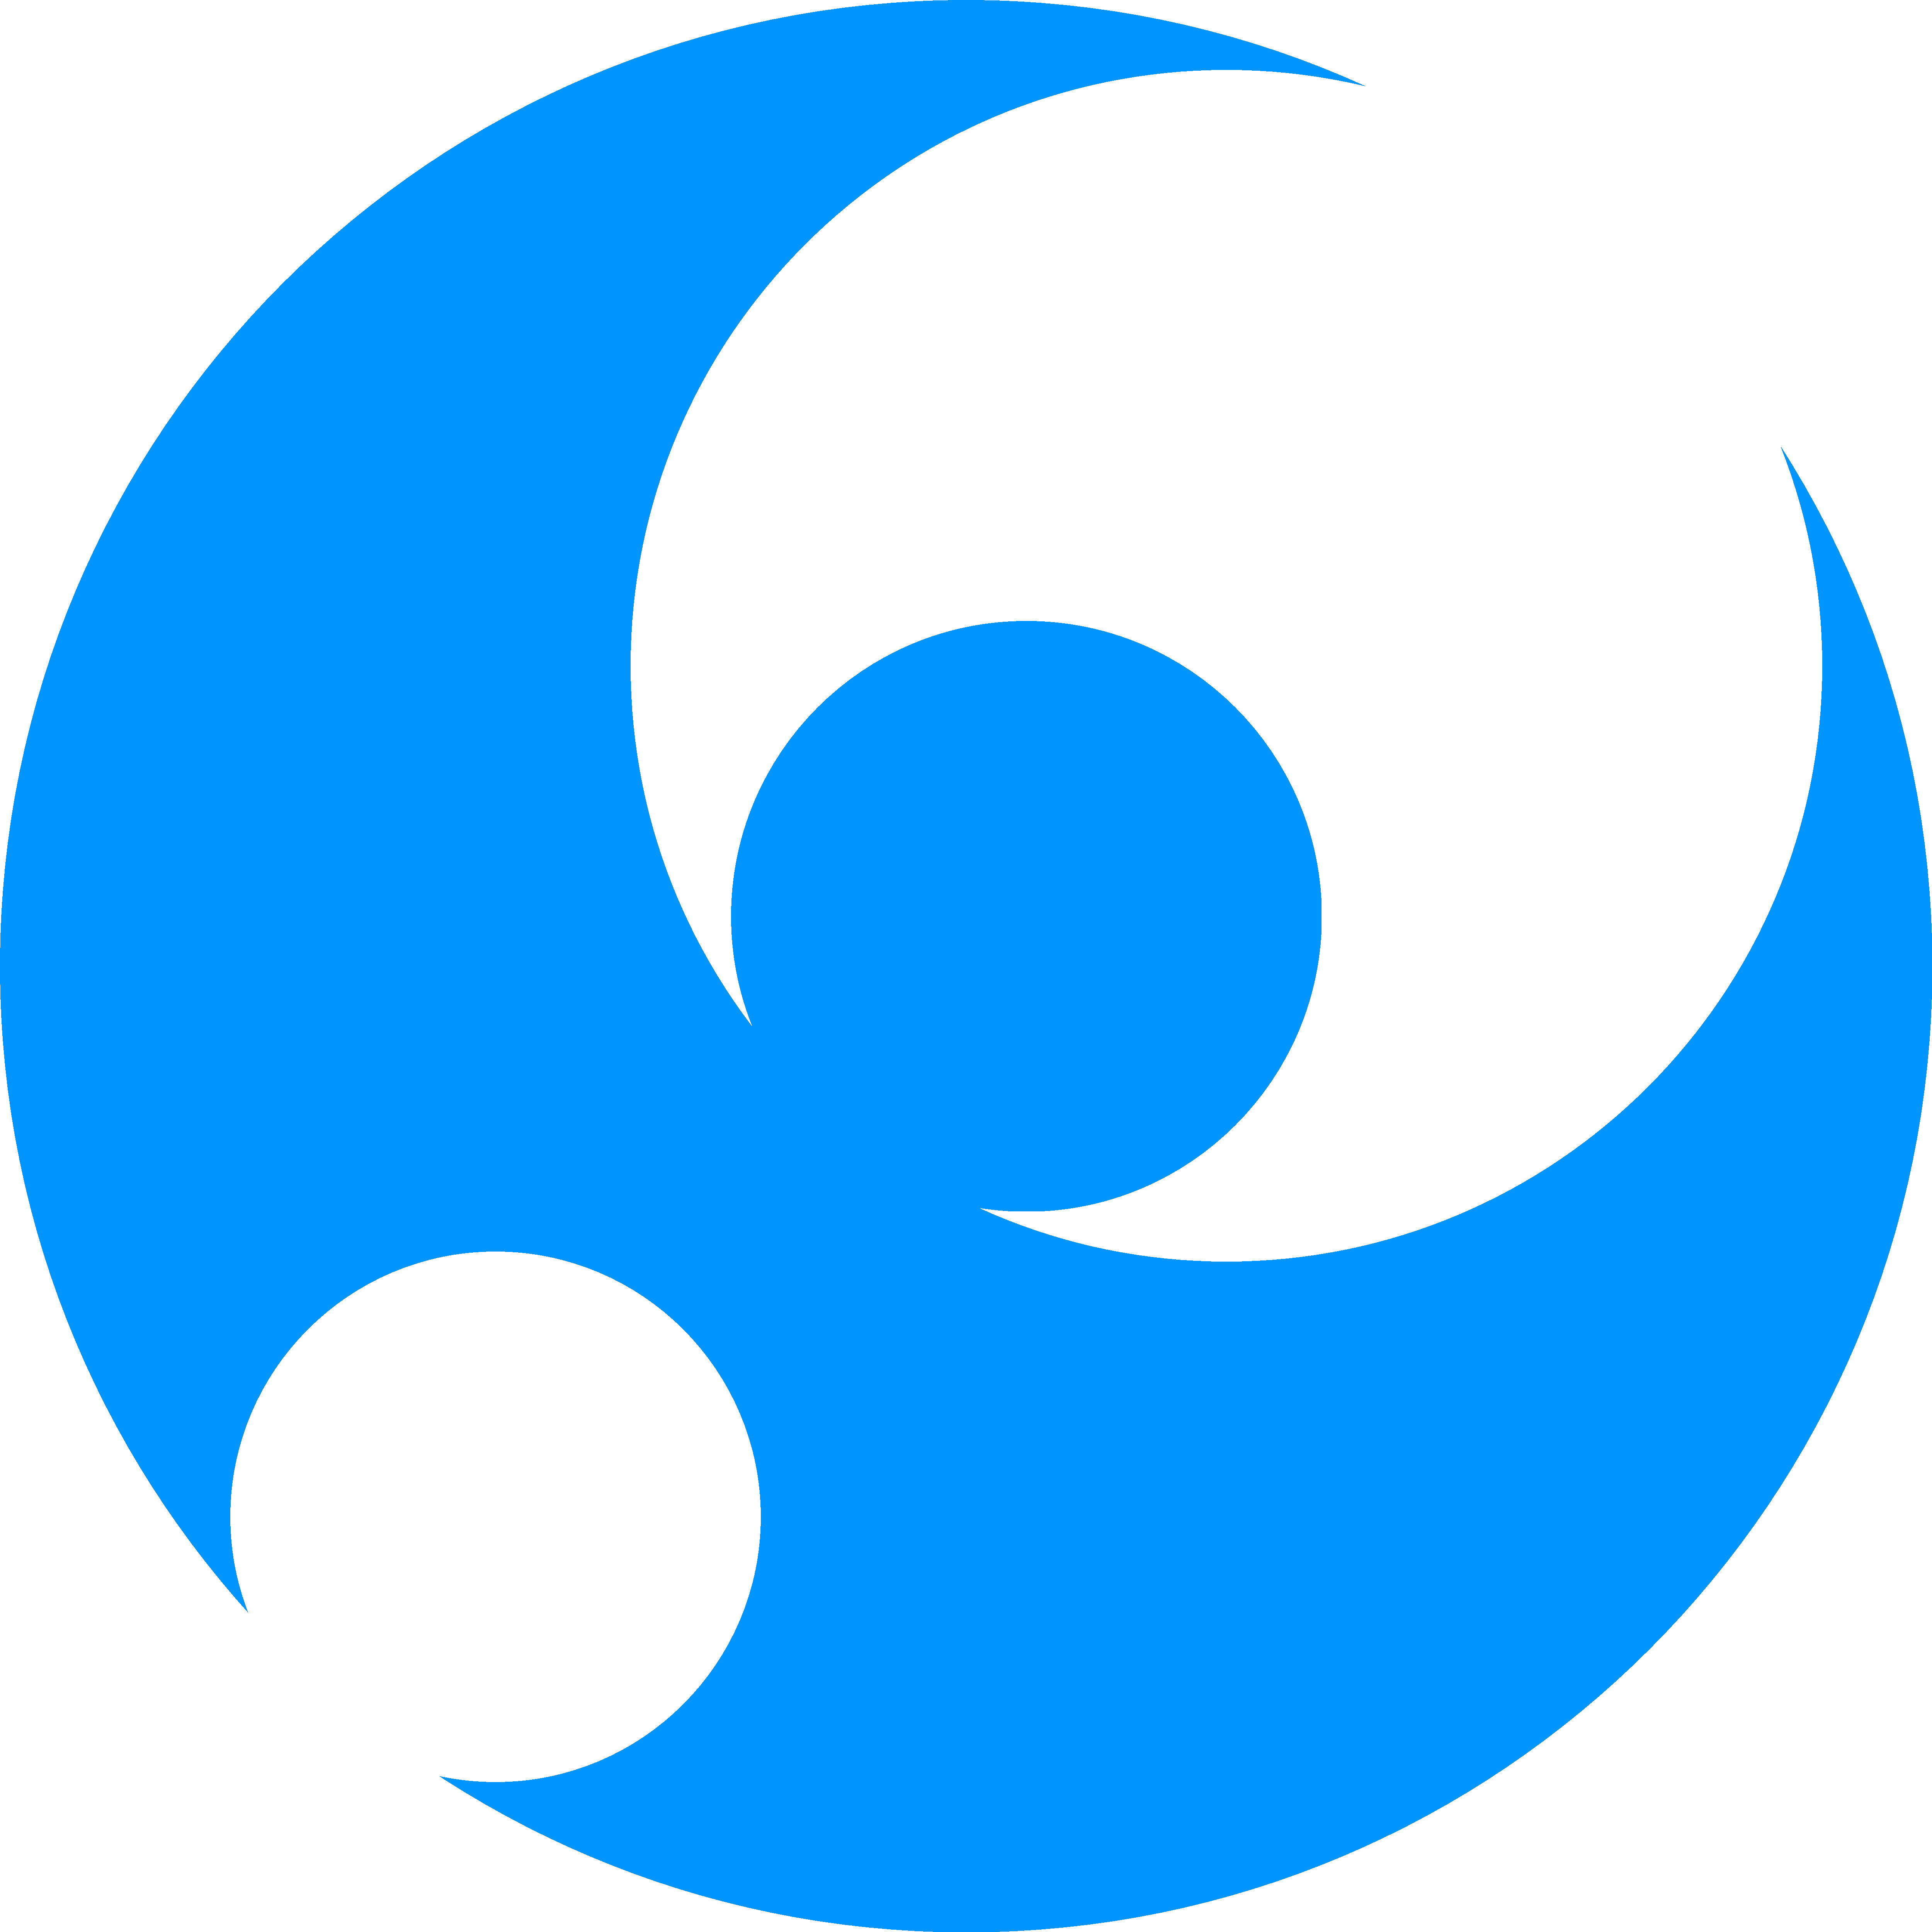 Moon logo png. Mathematics what is the